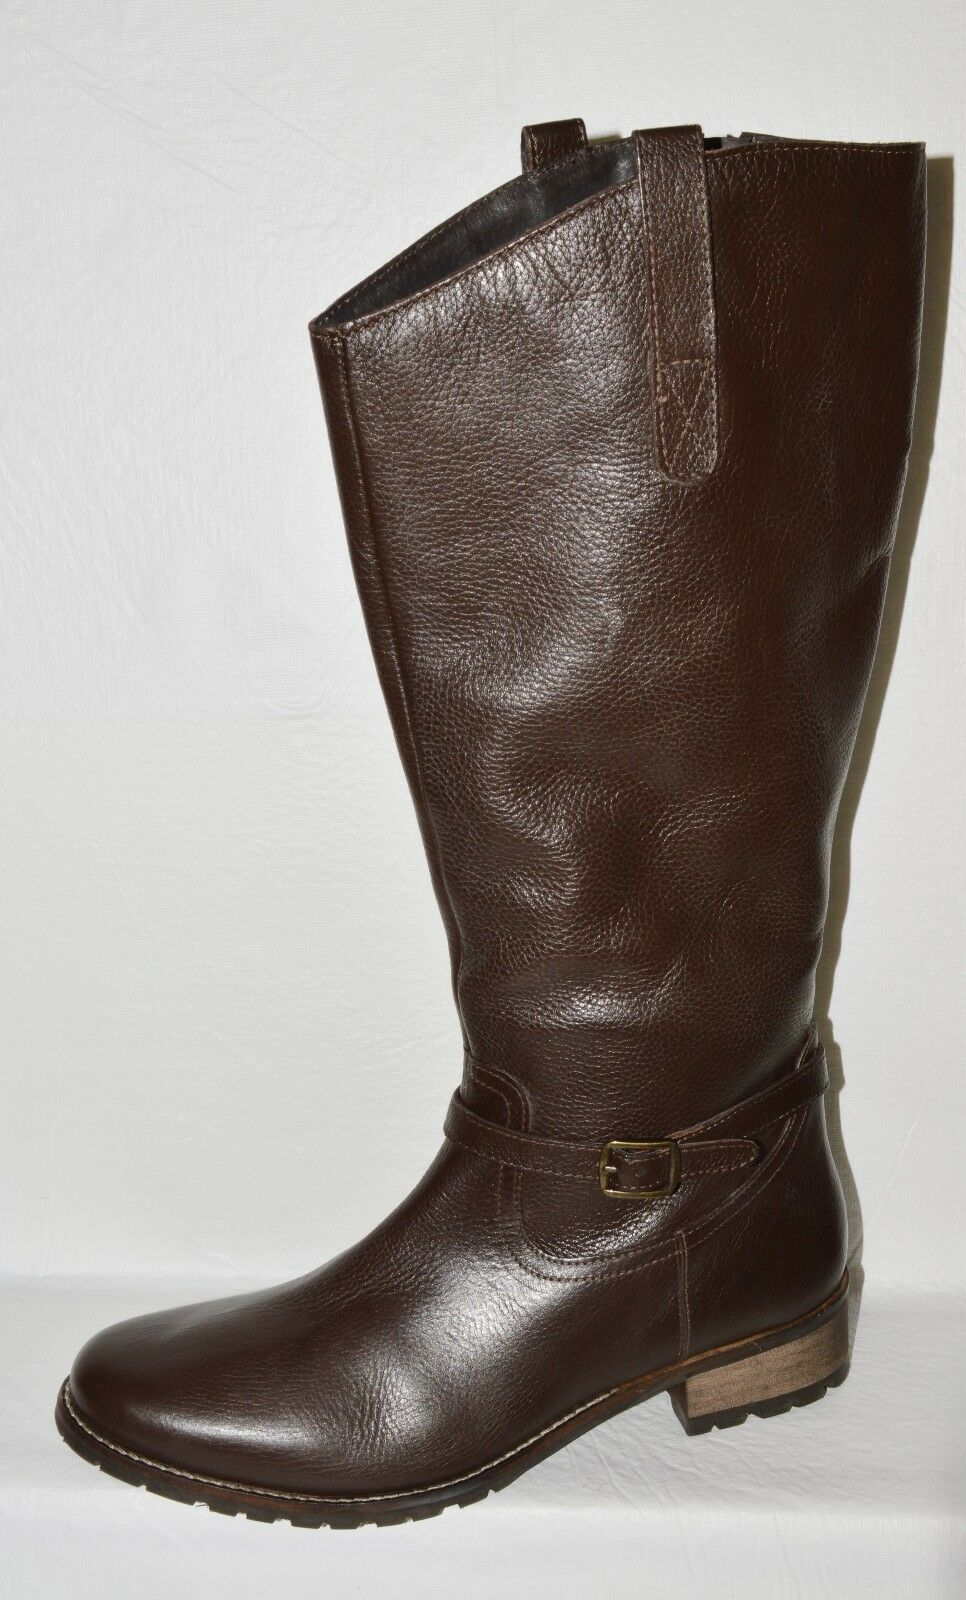 JOHNNIE B NEU SZ 10 10.5 M 41 BROWN LEATHER KNEE HIGH RIDING BOOTS WOOL LINED